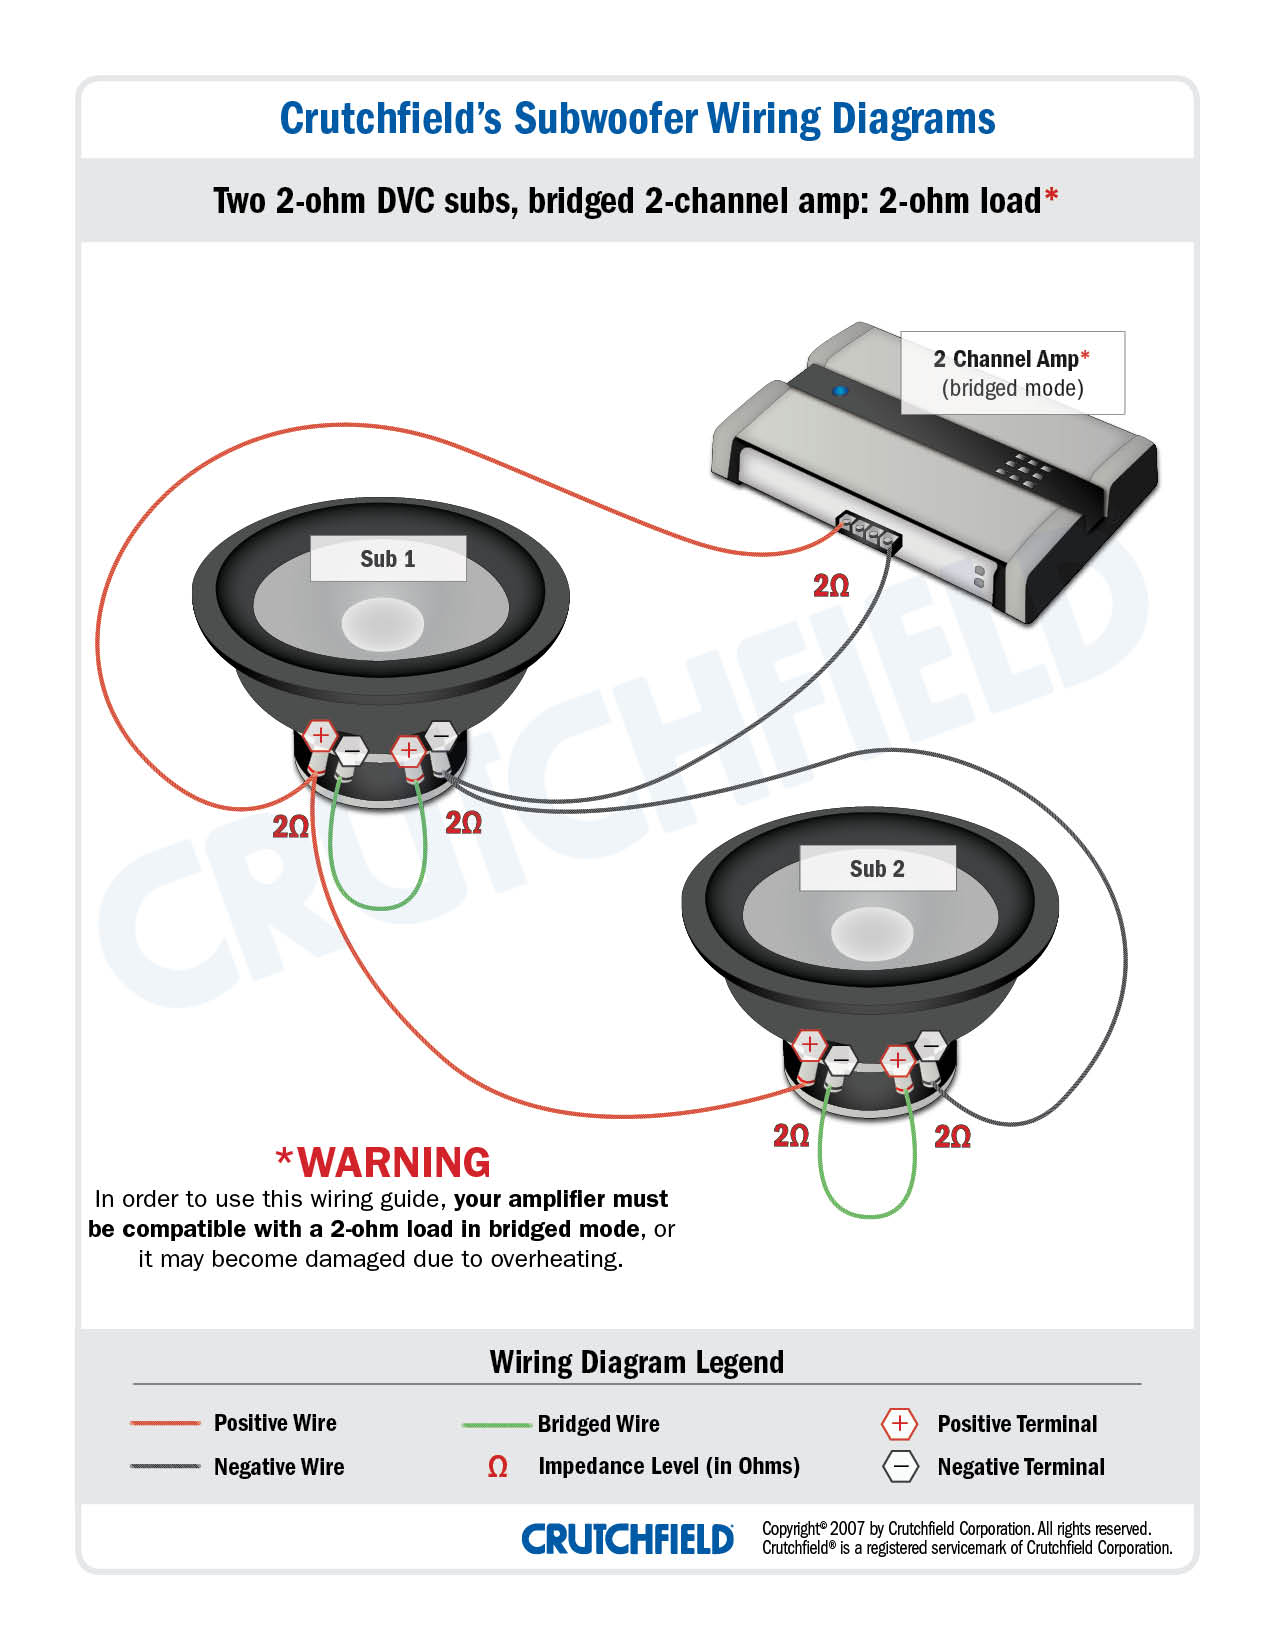 2 DVC 2 ohm 2 ch low imp dual 4 ohm wiring diagram 2 ohm dvc wiring \u2022 free wiring diagrams subwoofer wiring diagram dual 4 ohm at alyssarenee.co